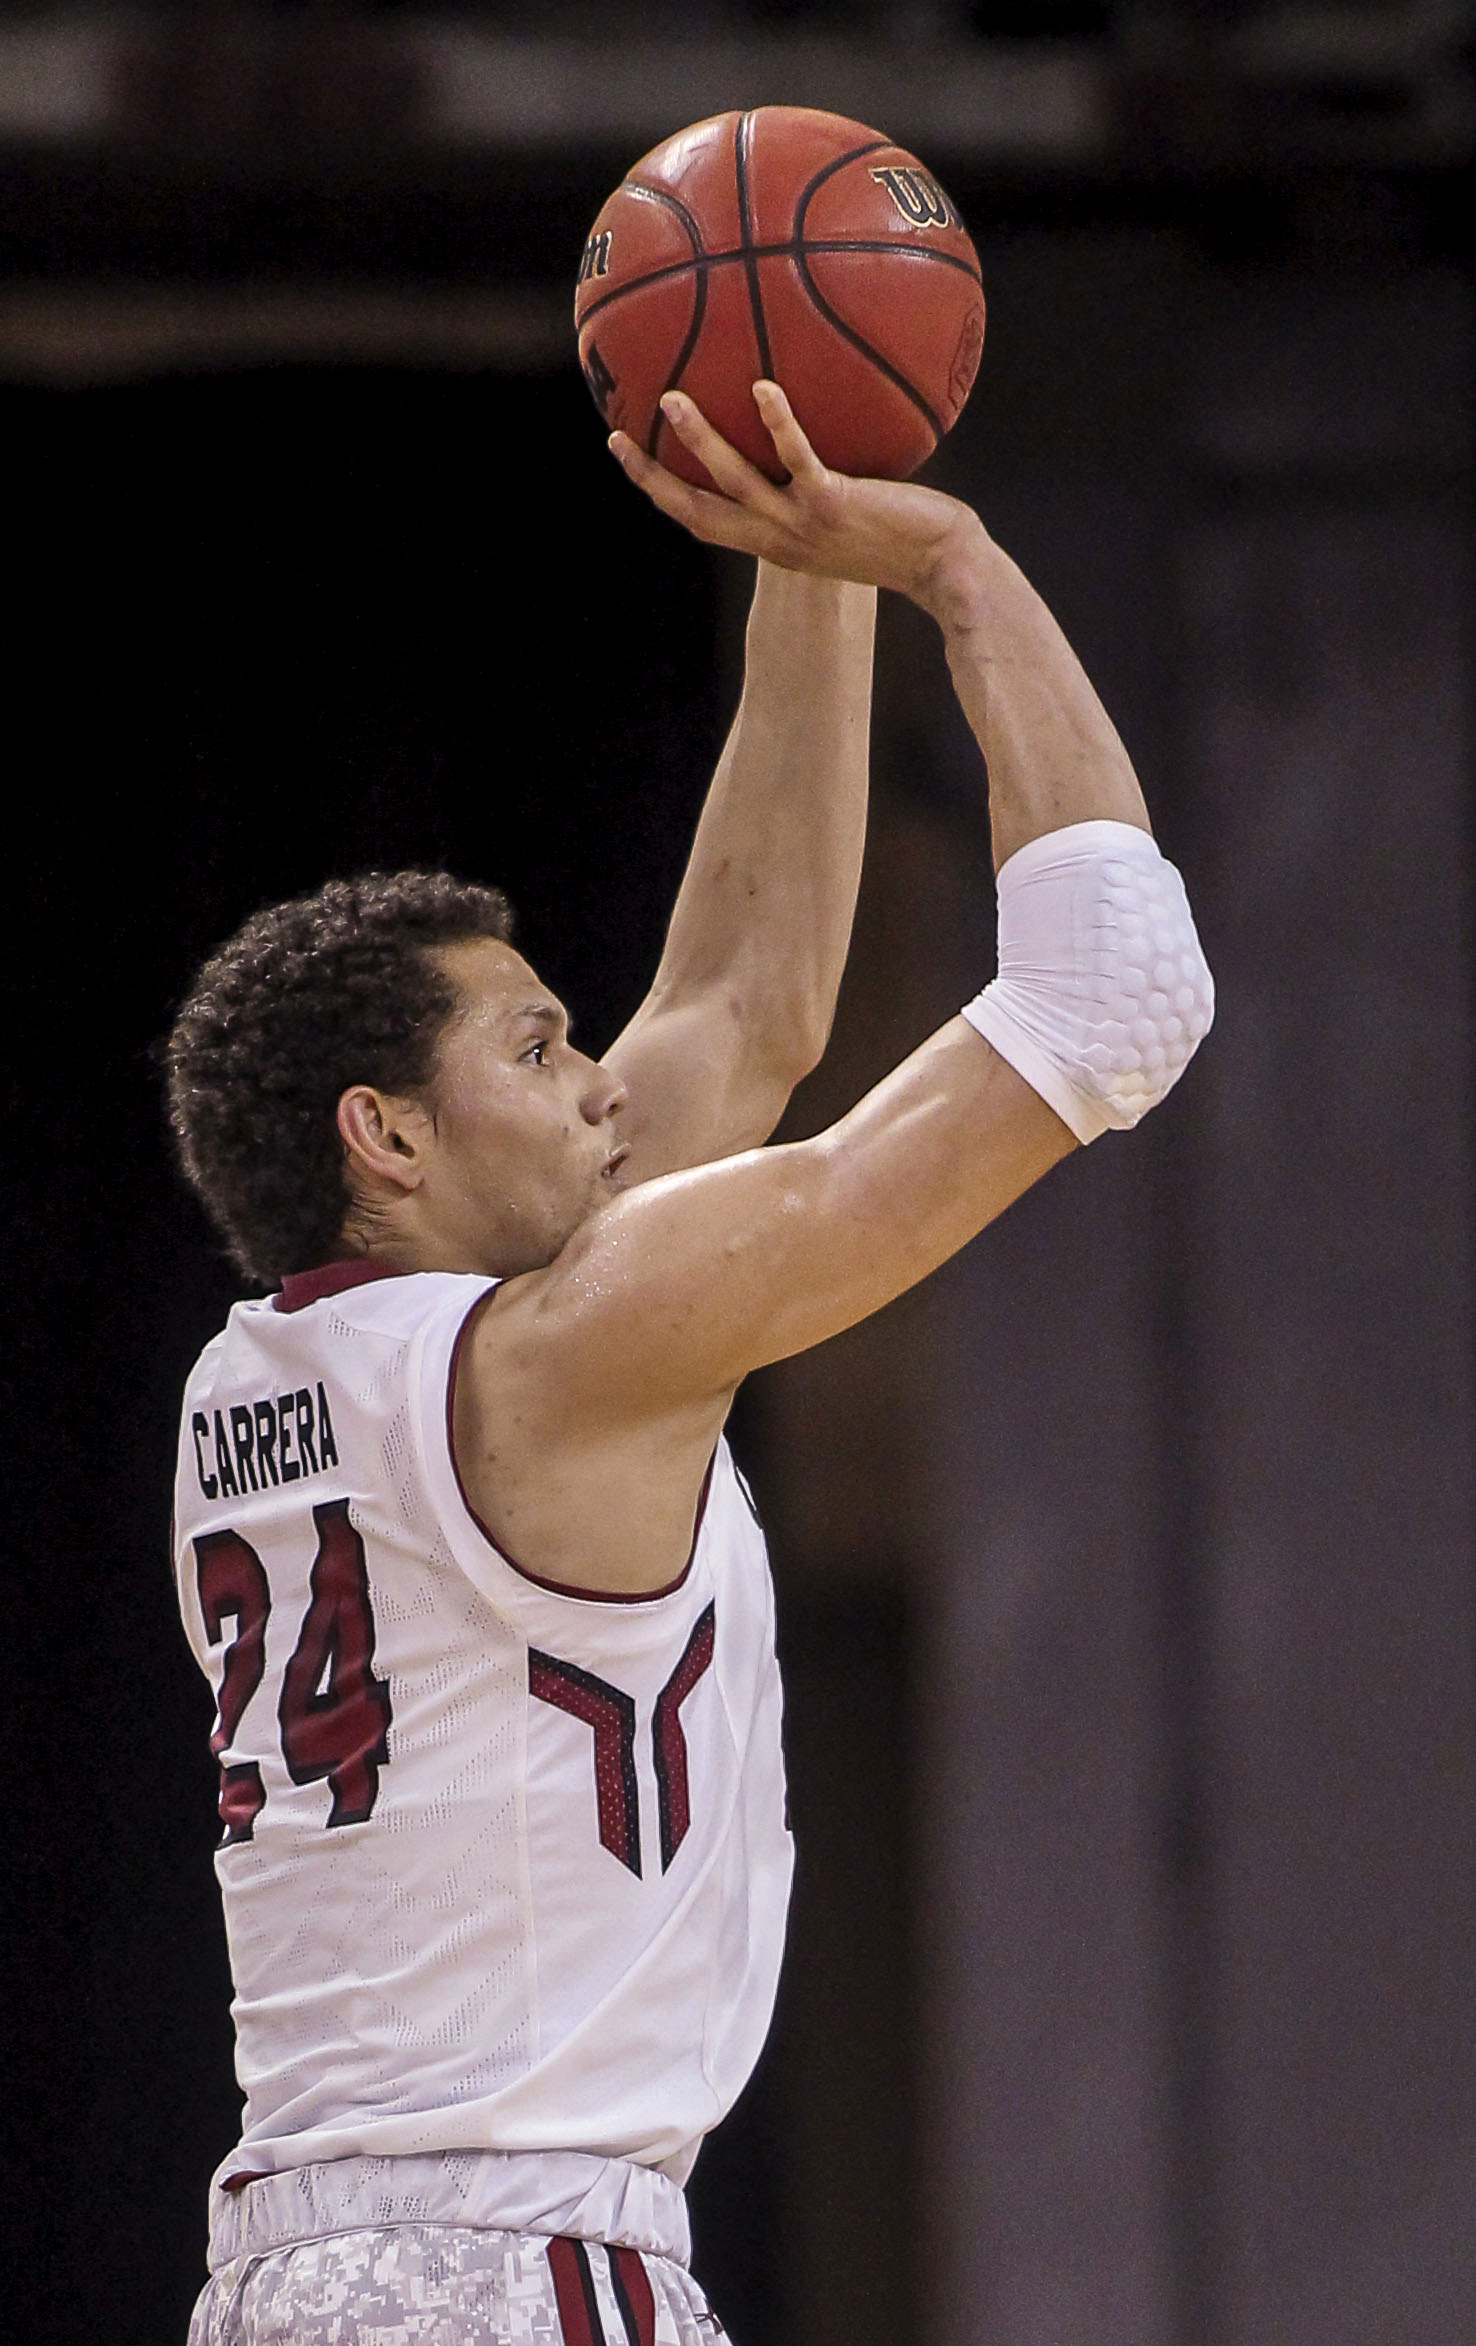 In this March 5, 2015 photo, South Carolina's Michael Carrera shoots against Arkansas during an NCAA college basketball game in Columbia, S.C. (AP Photo/Travis Bell)